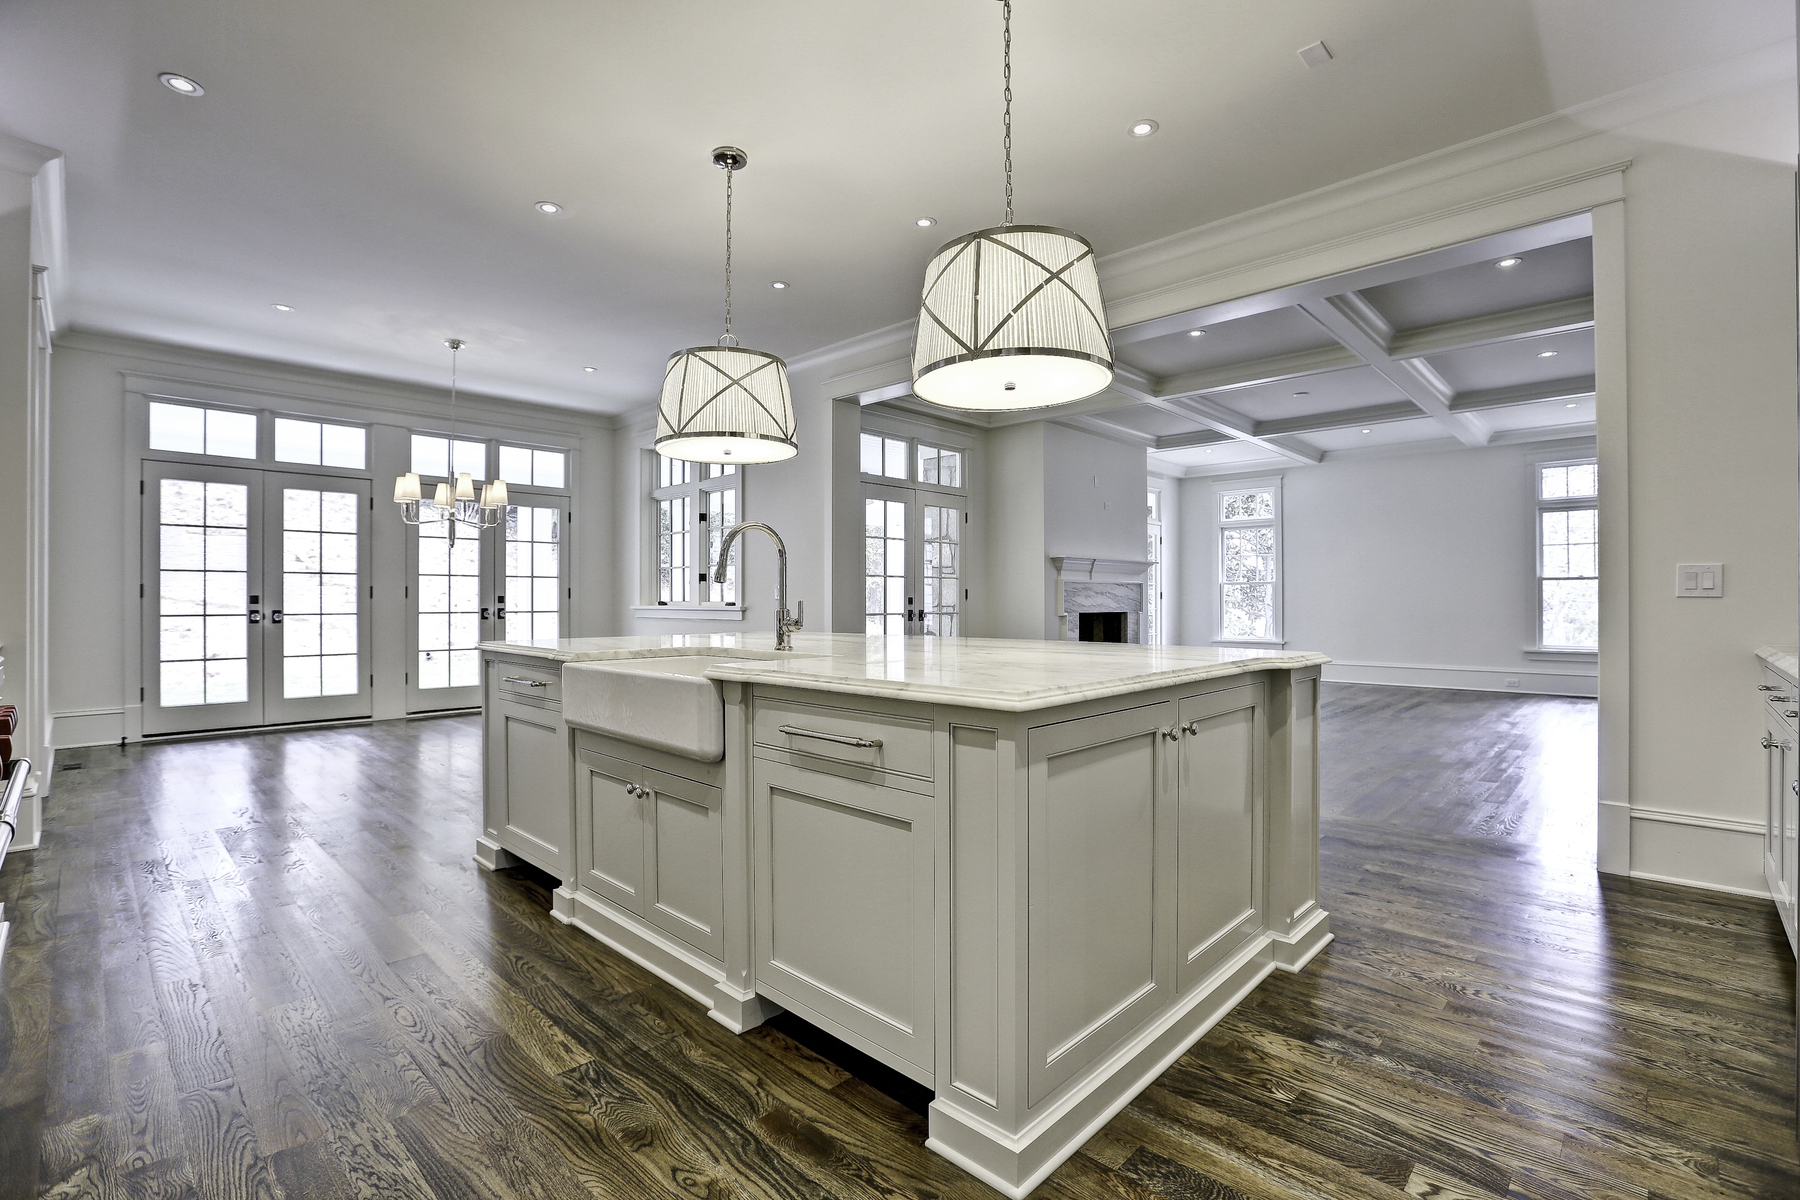 Additional photo for property listing at Deluxe Custom New Construction by Jackbilt Homes on Sought-After Street 479 Argonne Drive NW Atlanta, 조지아 30305 미국